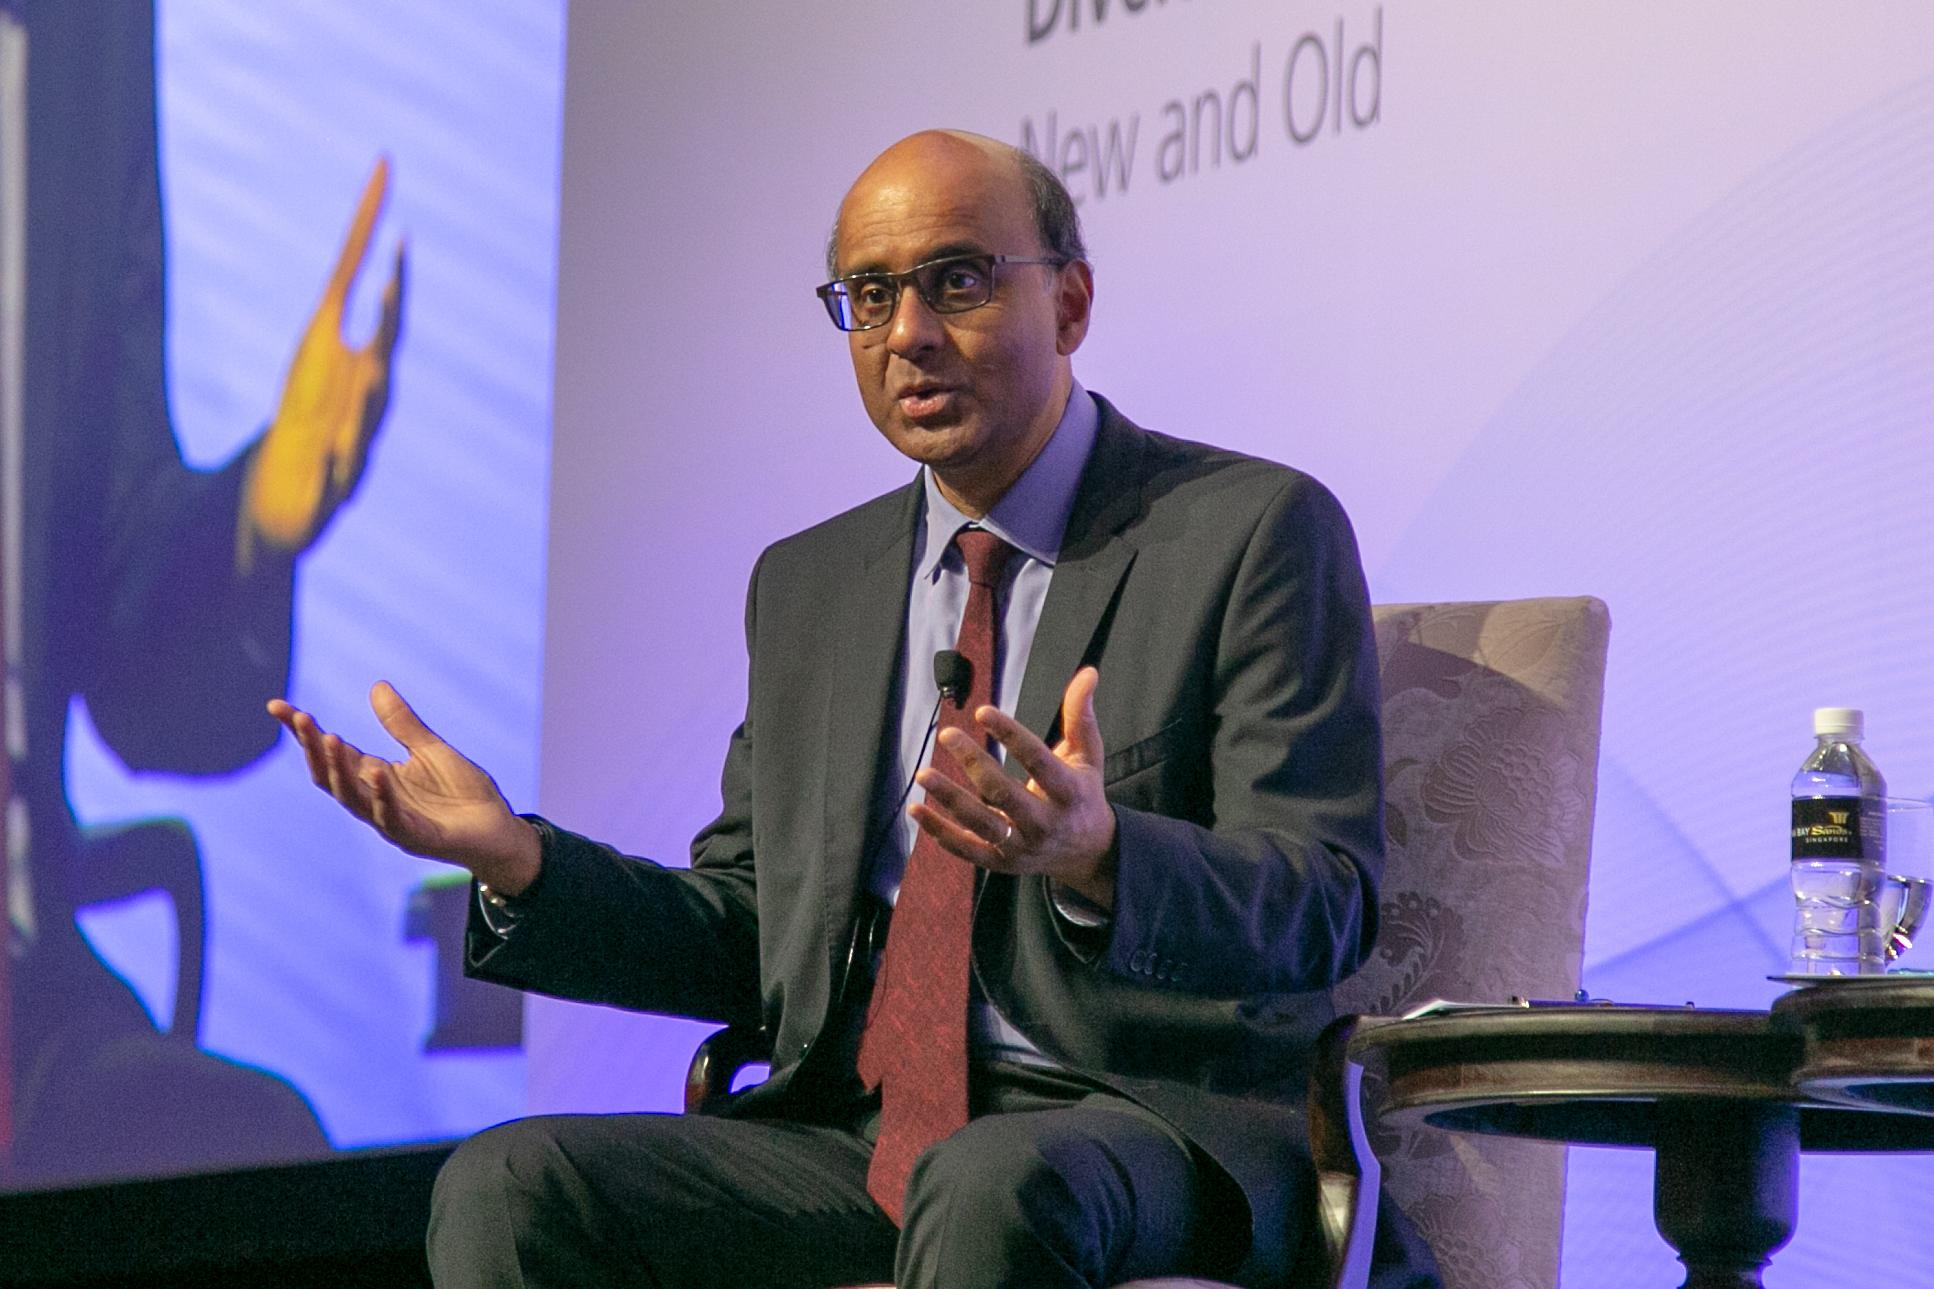 Far fewer new jobs likely to be created than lost over next year: Tharman